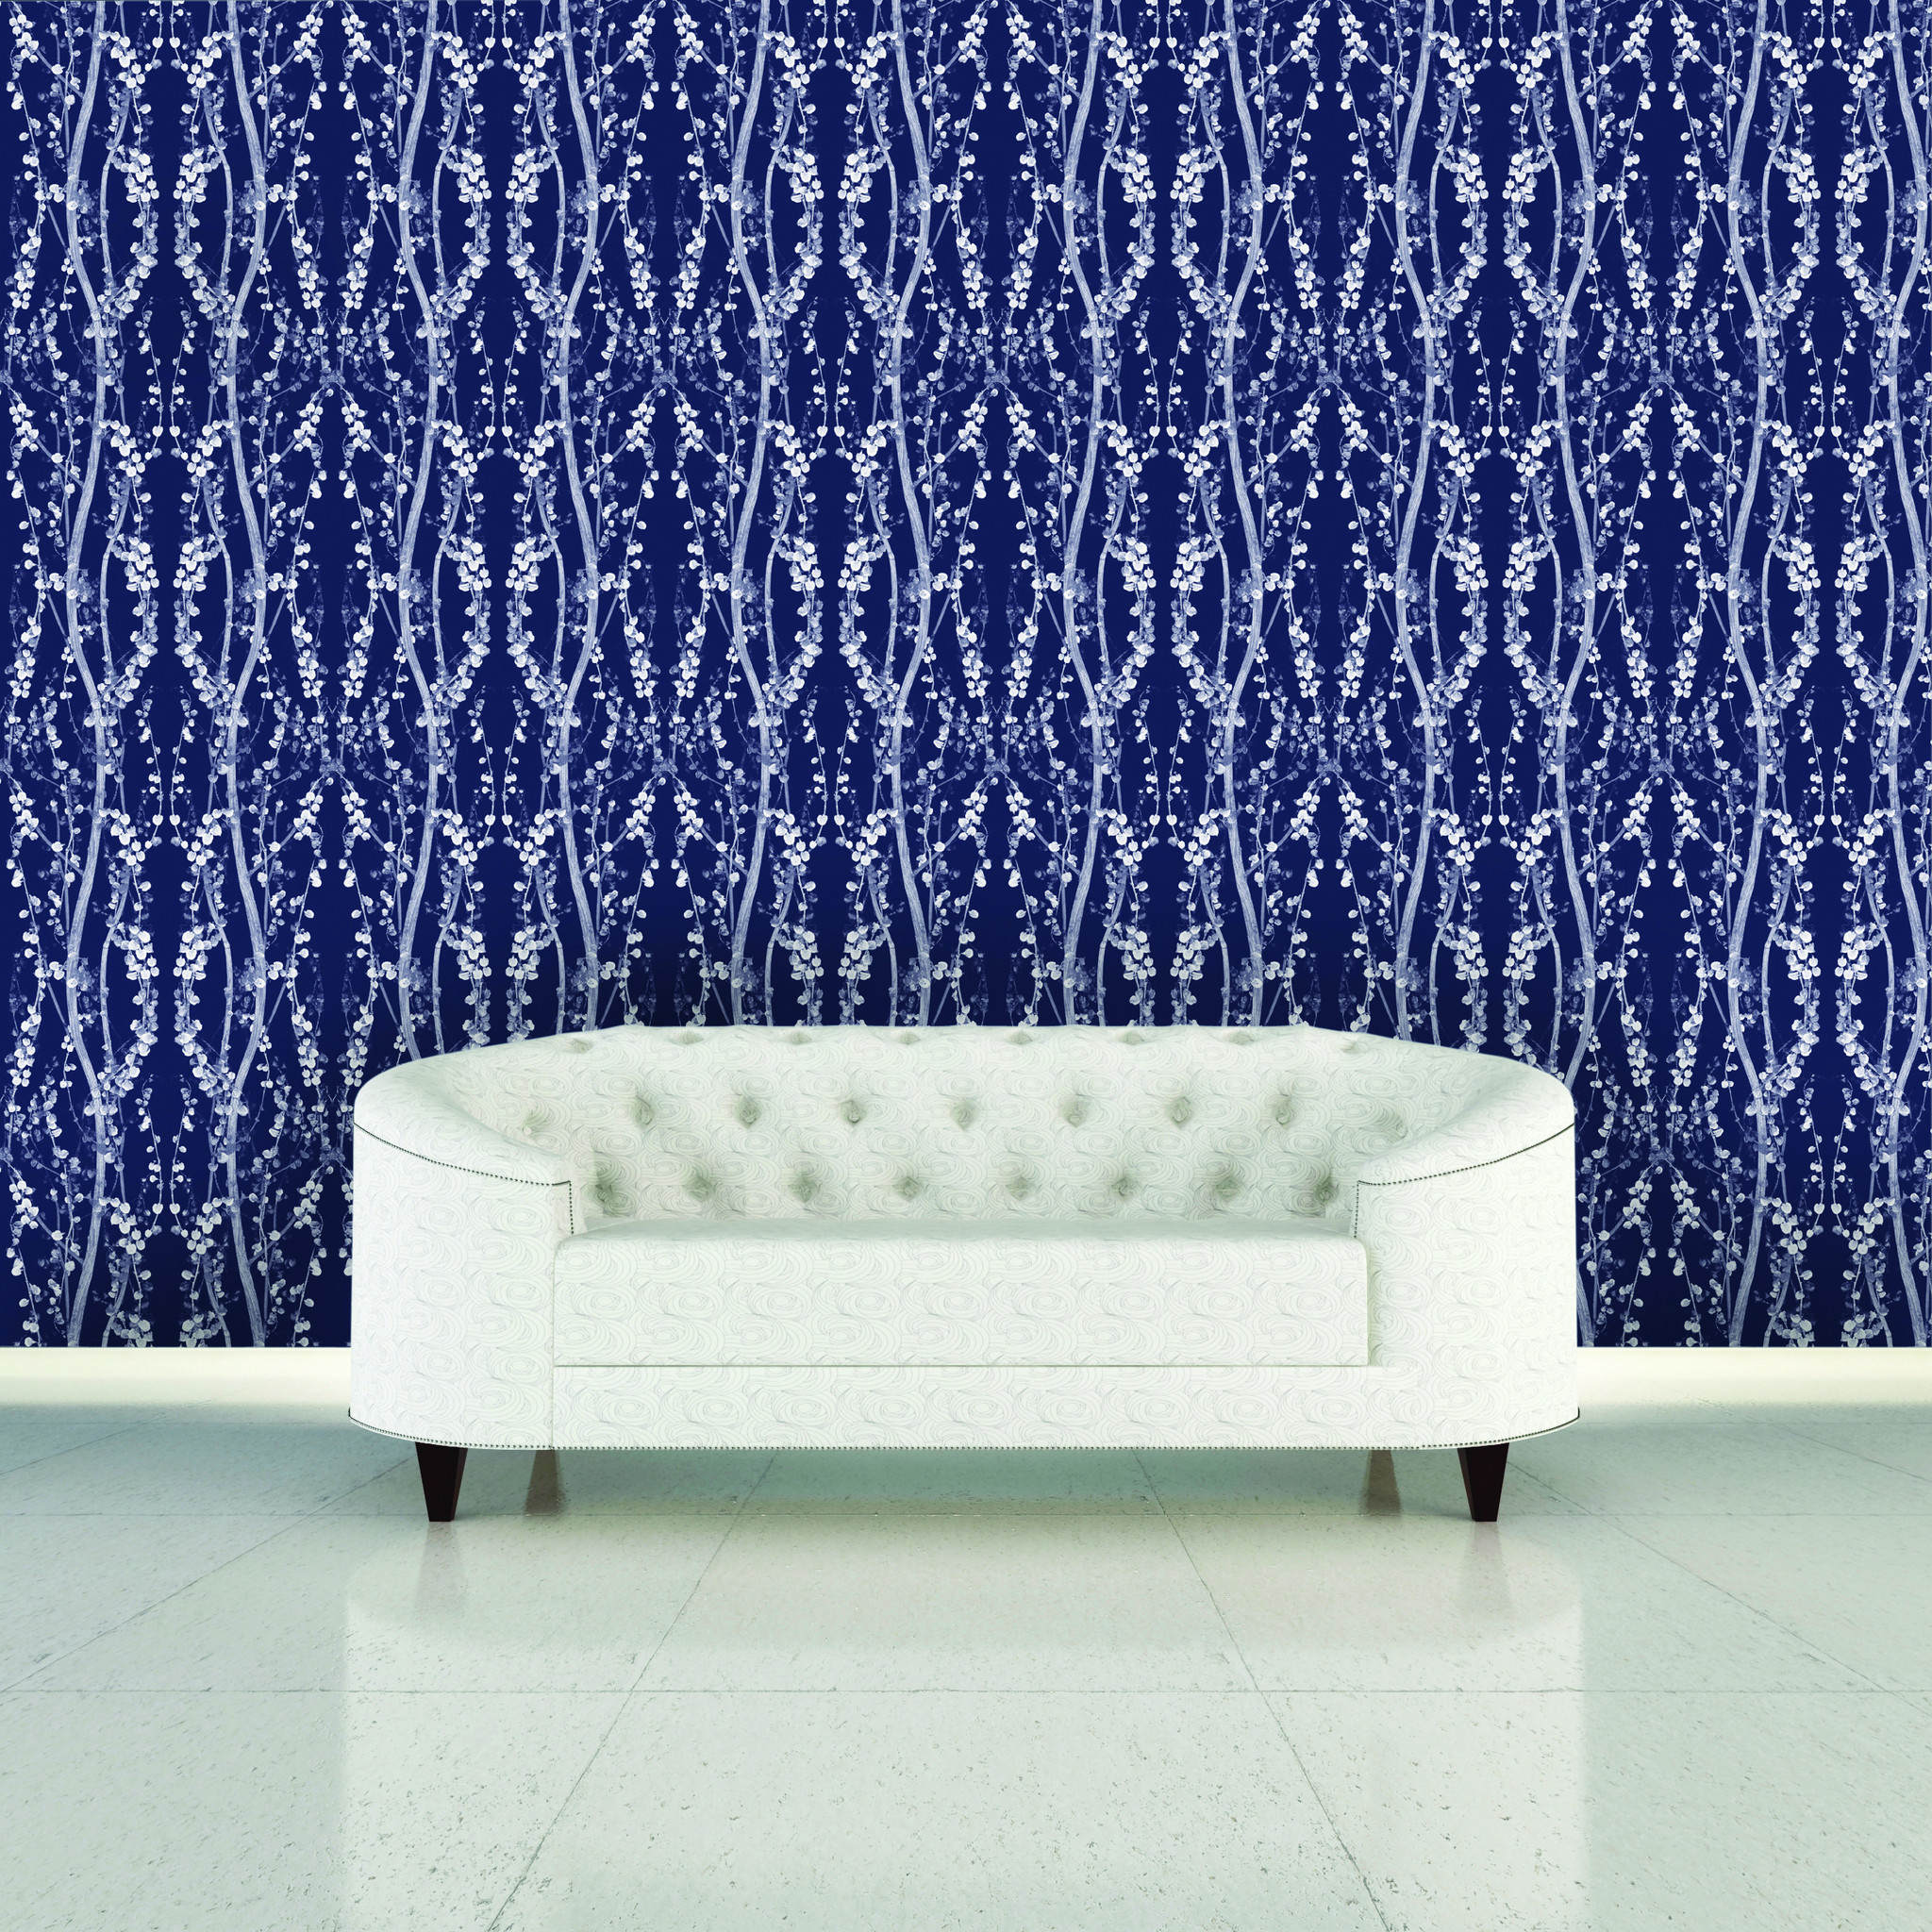 wonderful Tempaper Wallpaper in mystery blue design matched with white tile floor for living room design